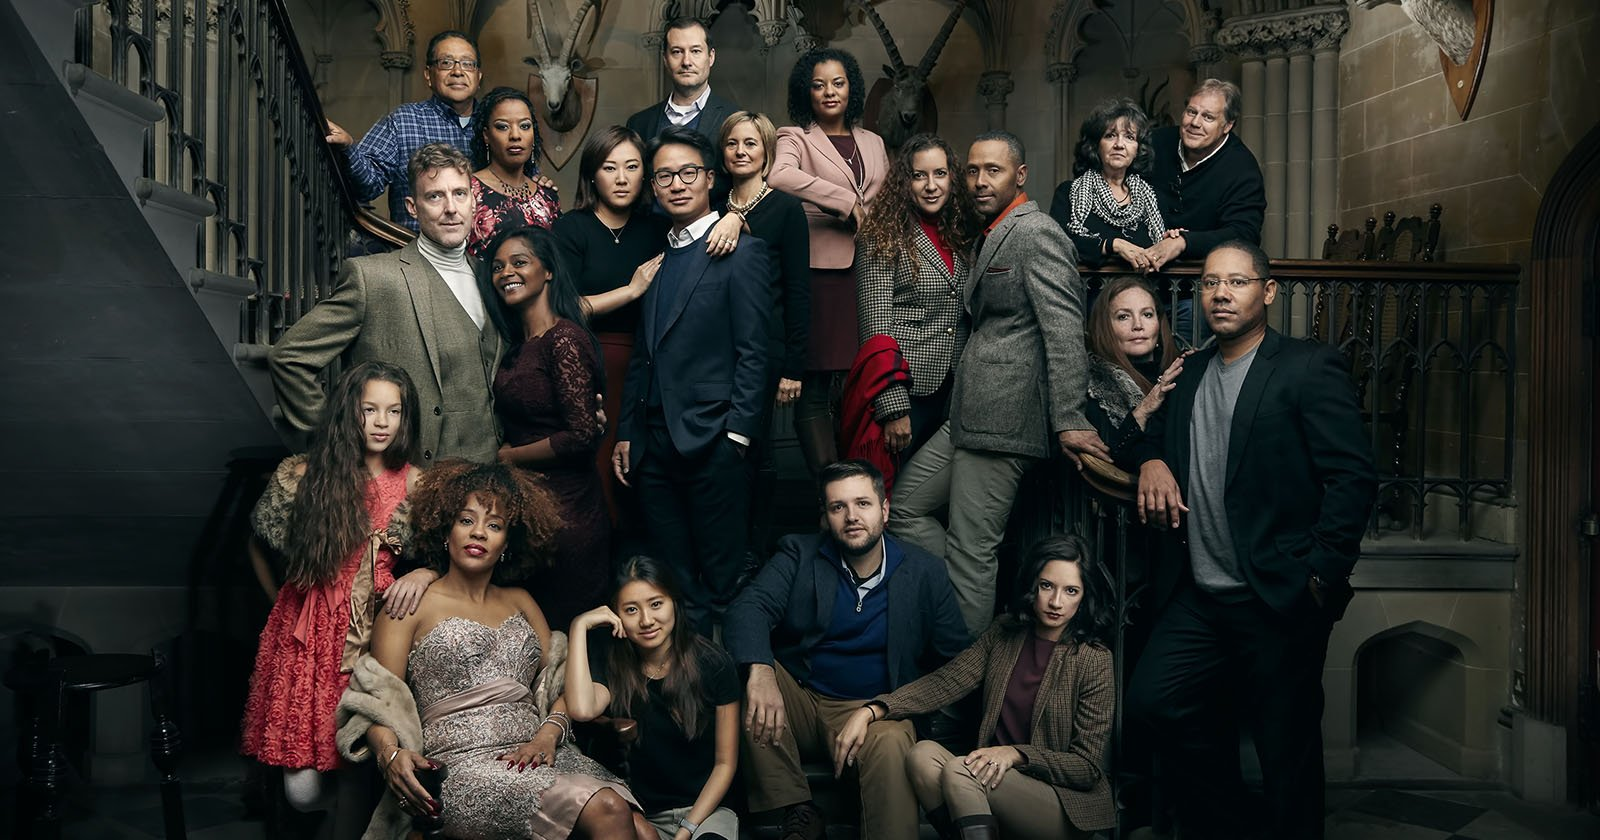 How To Shoot An Annie Leibovitz Style Group Portrait With